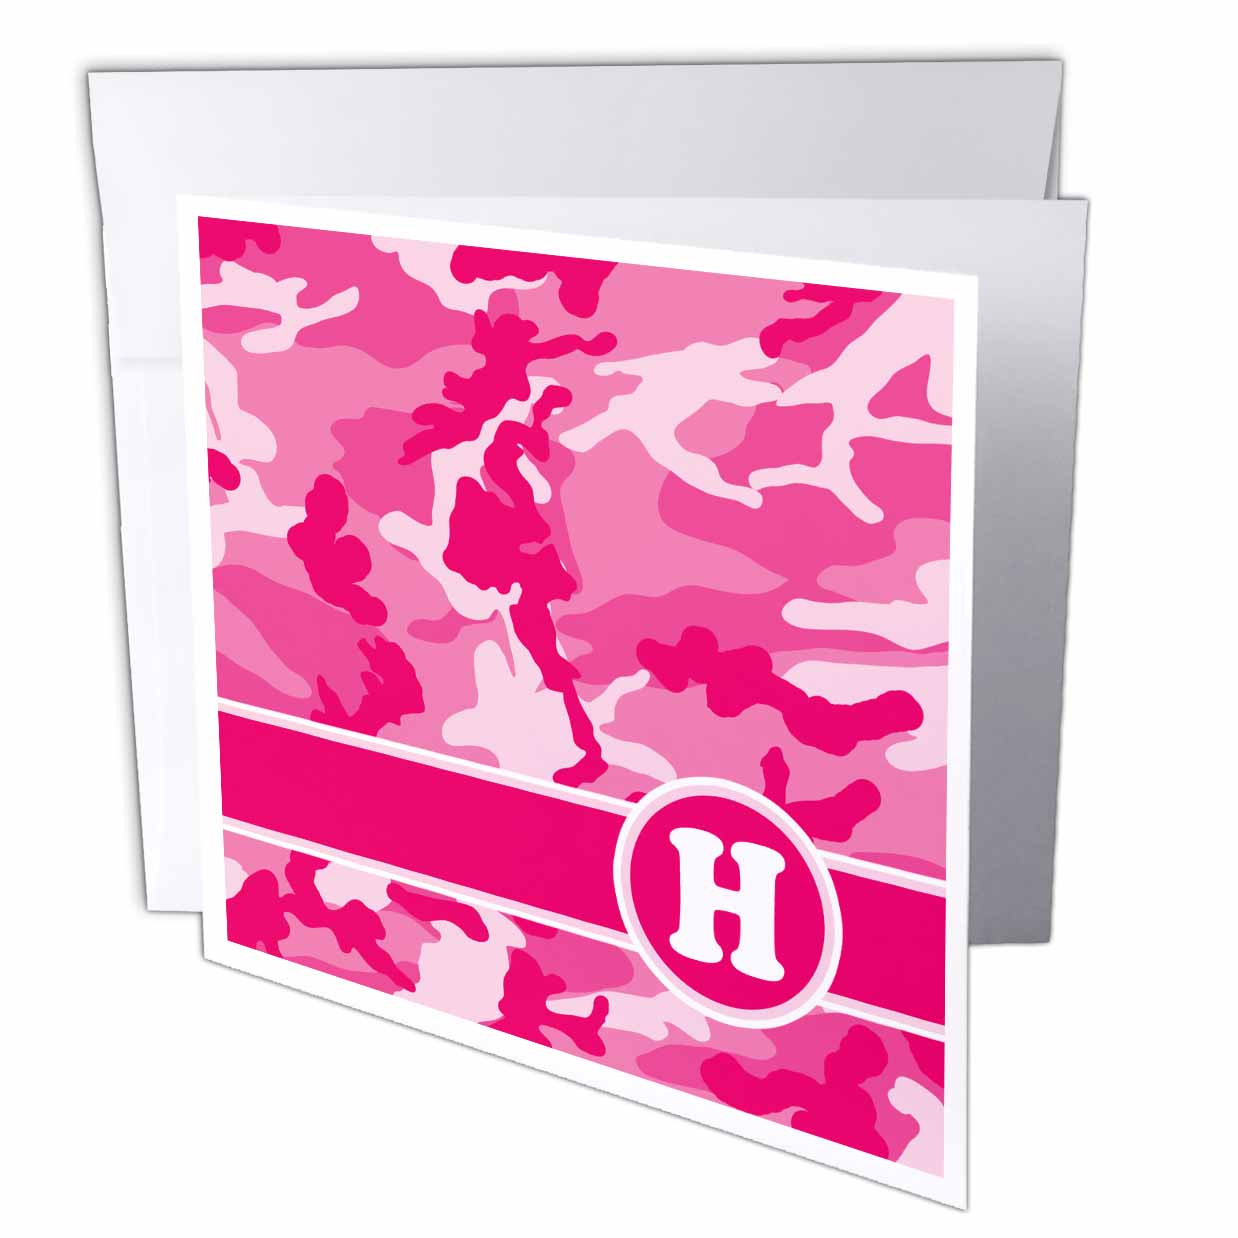 3dRose Cute Pink Camo Camouflage Letter H, Greeting Cards, 6 x 6 inches, set of 12